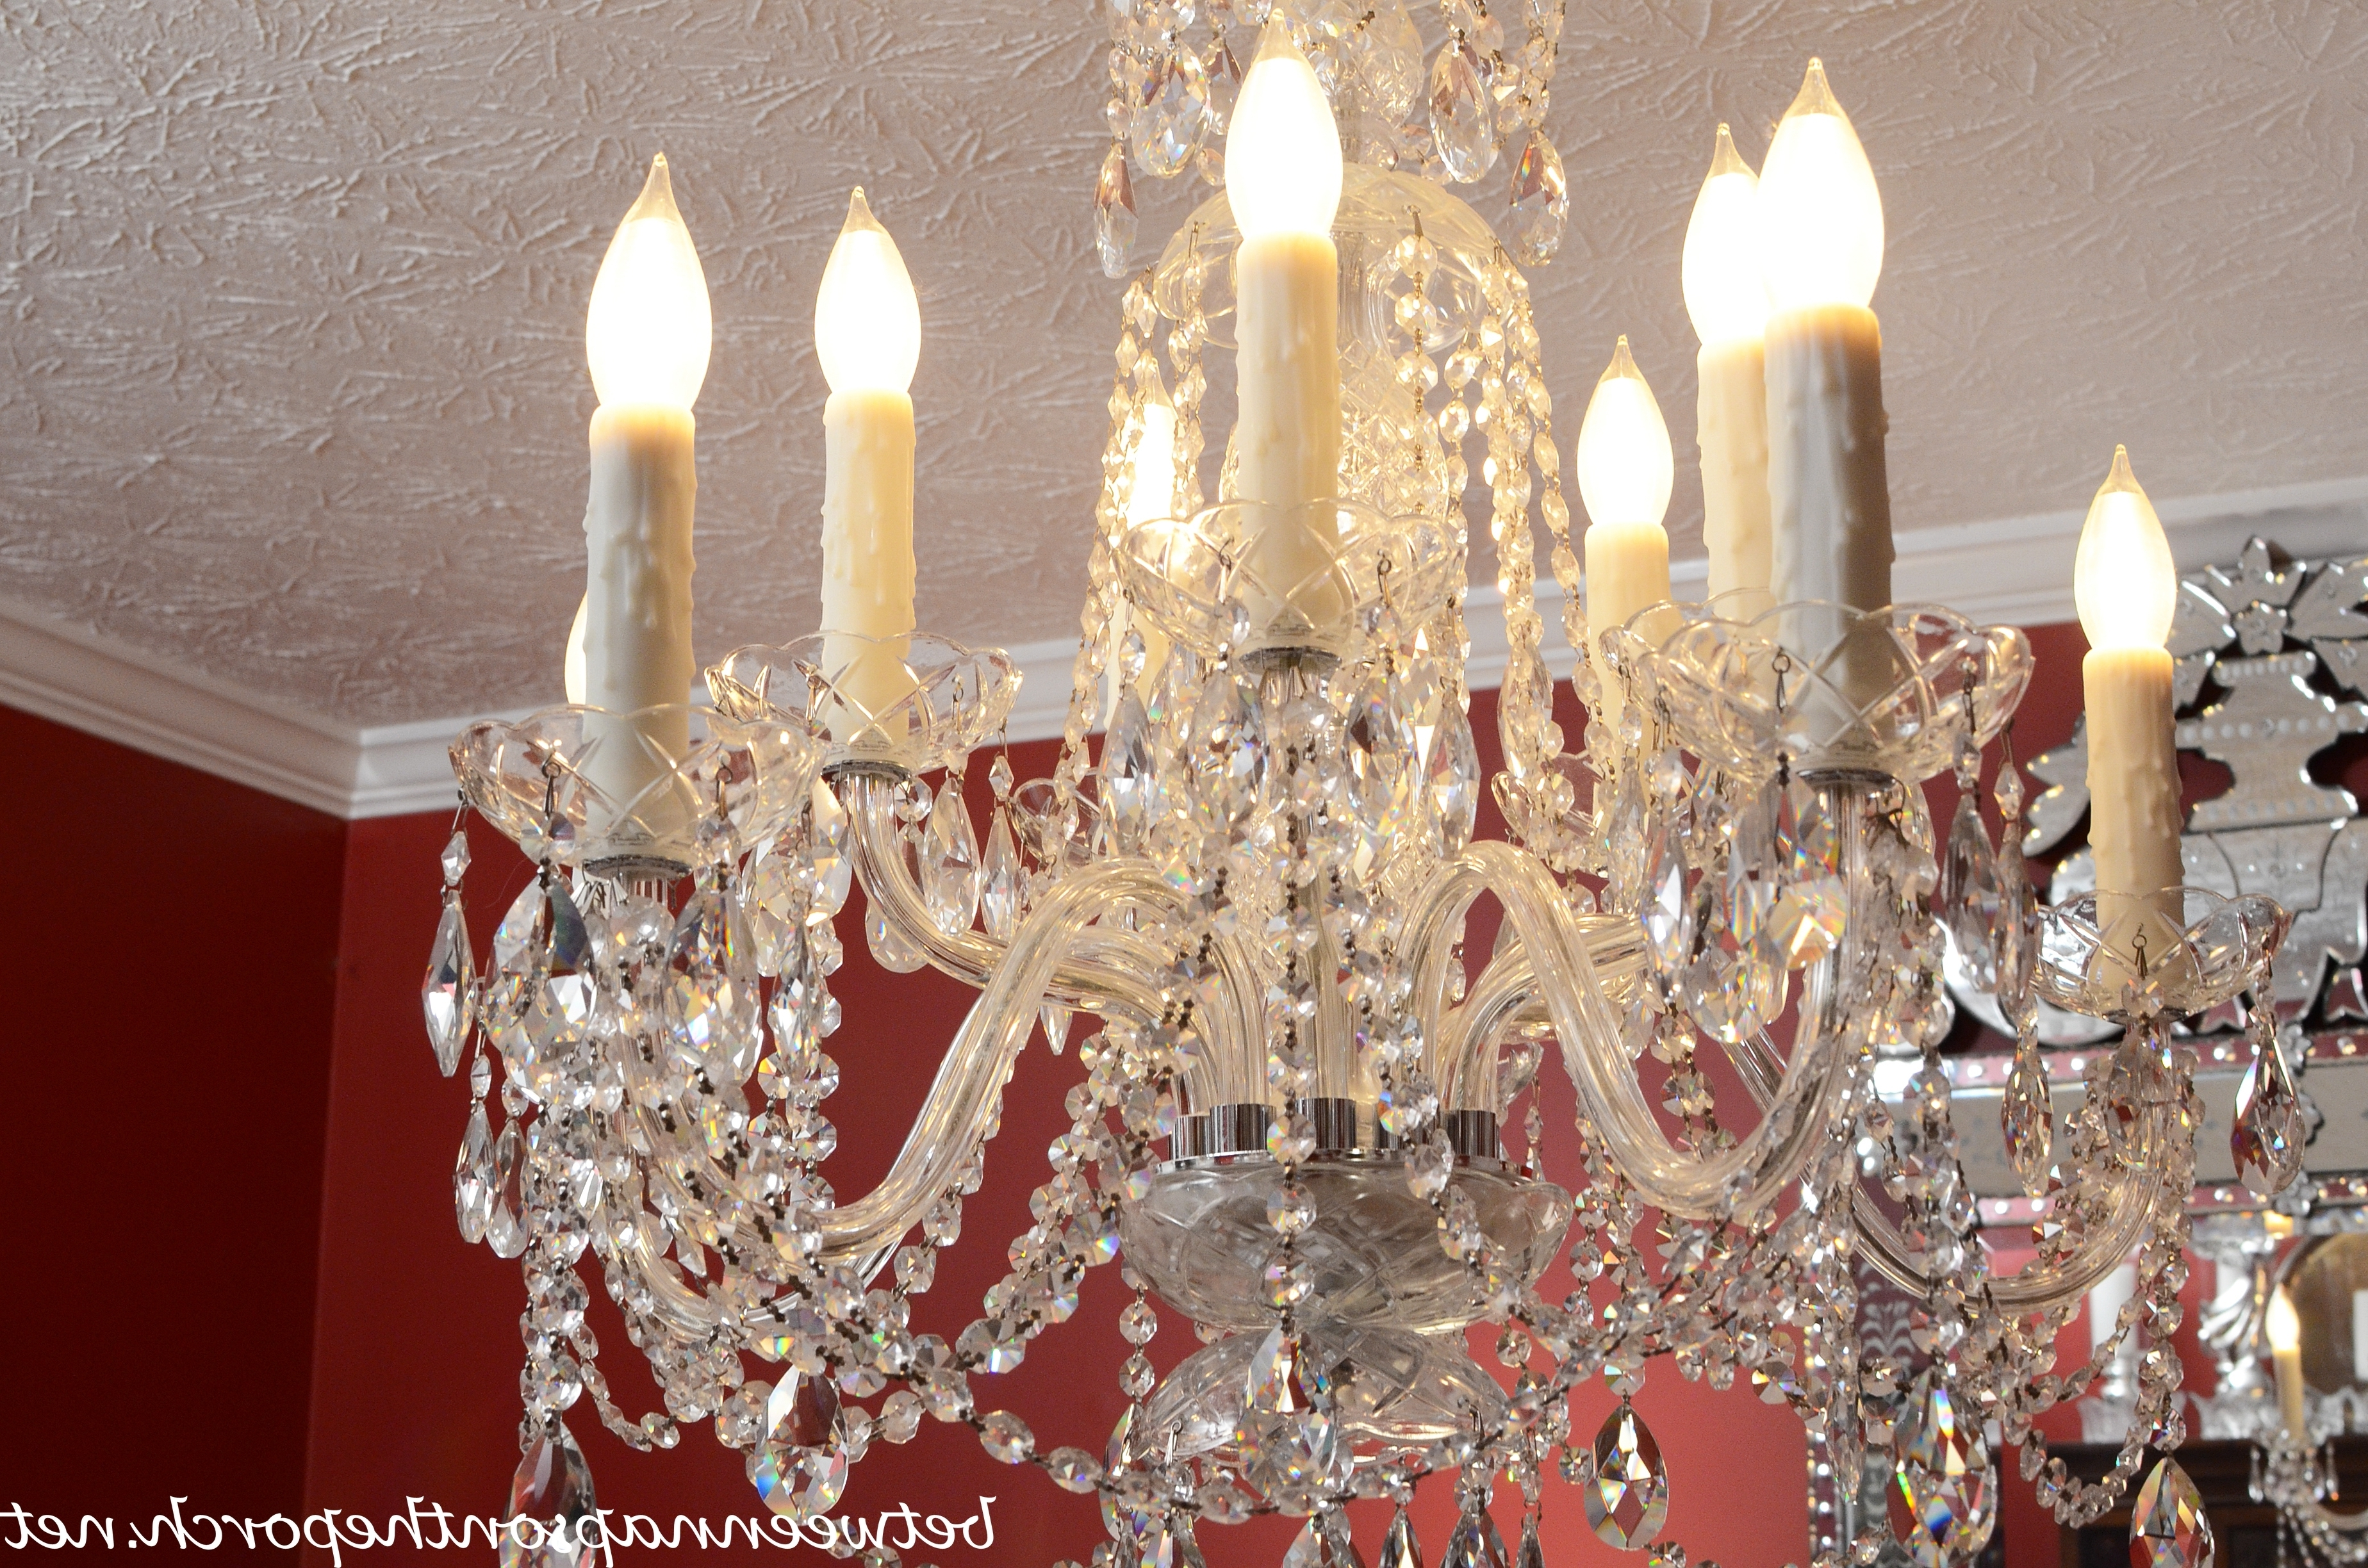 Trendy Transform An Ordinary Chandelier With Resin Candle Covers And Silk Within Weird Chandeliers (View 13 of 20)